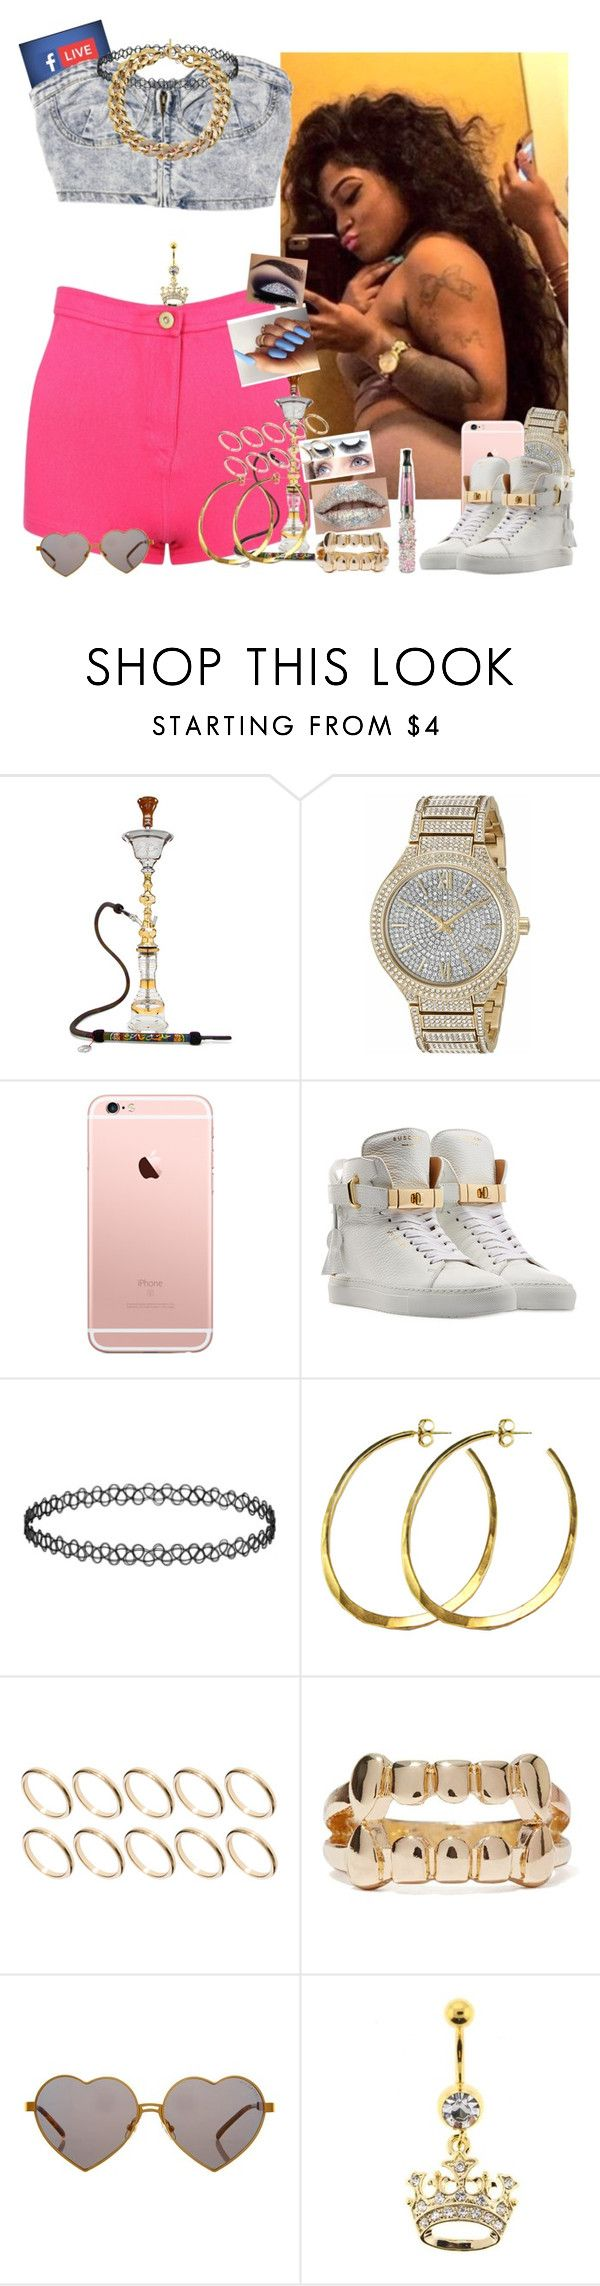 """💕✔️💸🍃💜💙😘🔥😉"" by saucinonyou999 ❤ liked on Polyvore featuring Michael Kors, BUSCEMI, Rebecca Norman, ASOS and Wildfox"